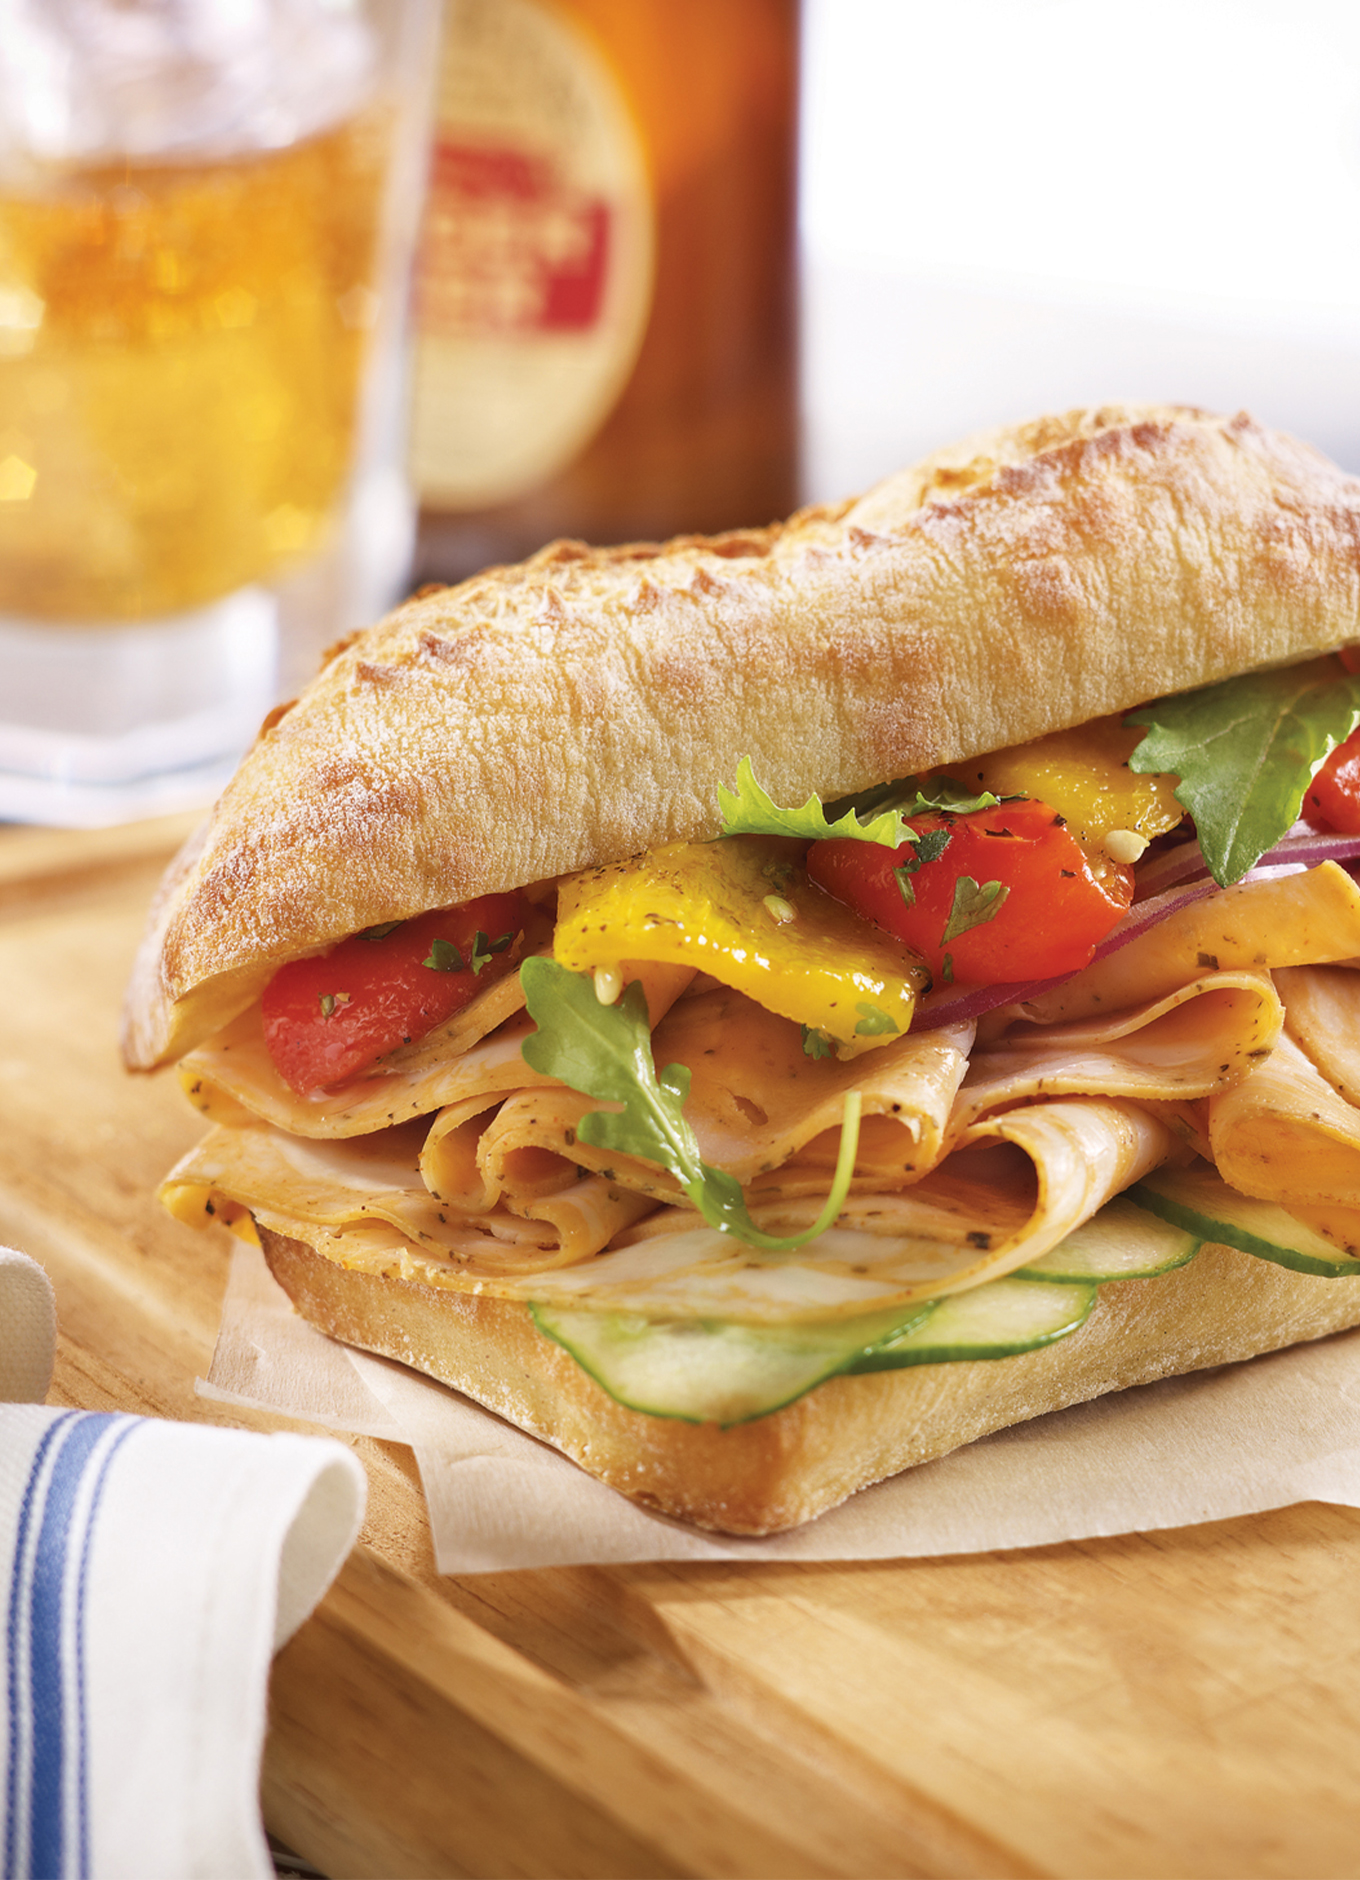 A fresh bun stuffed with Halal Chicken deli slices, peppers, cucumbers and seasonings.